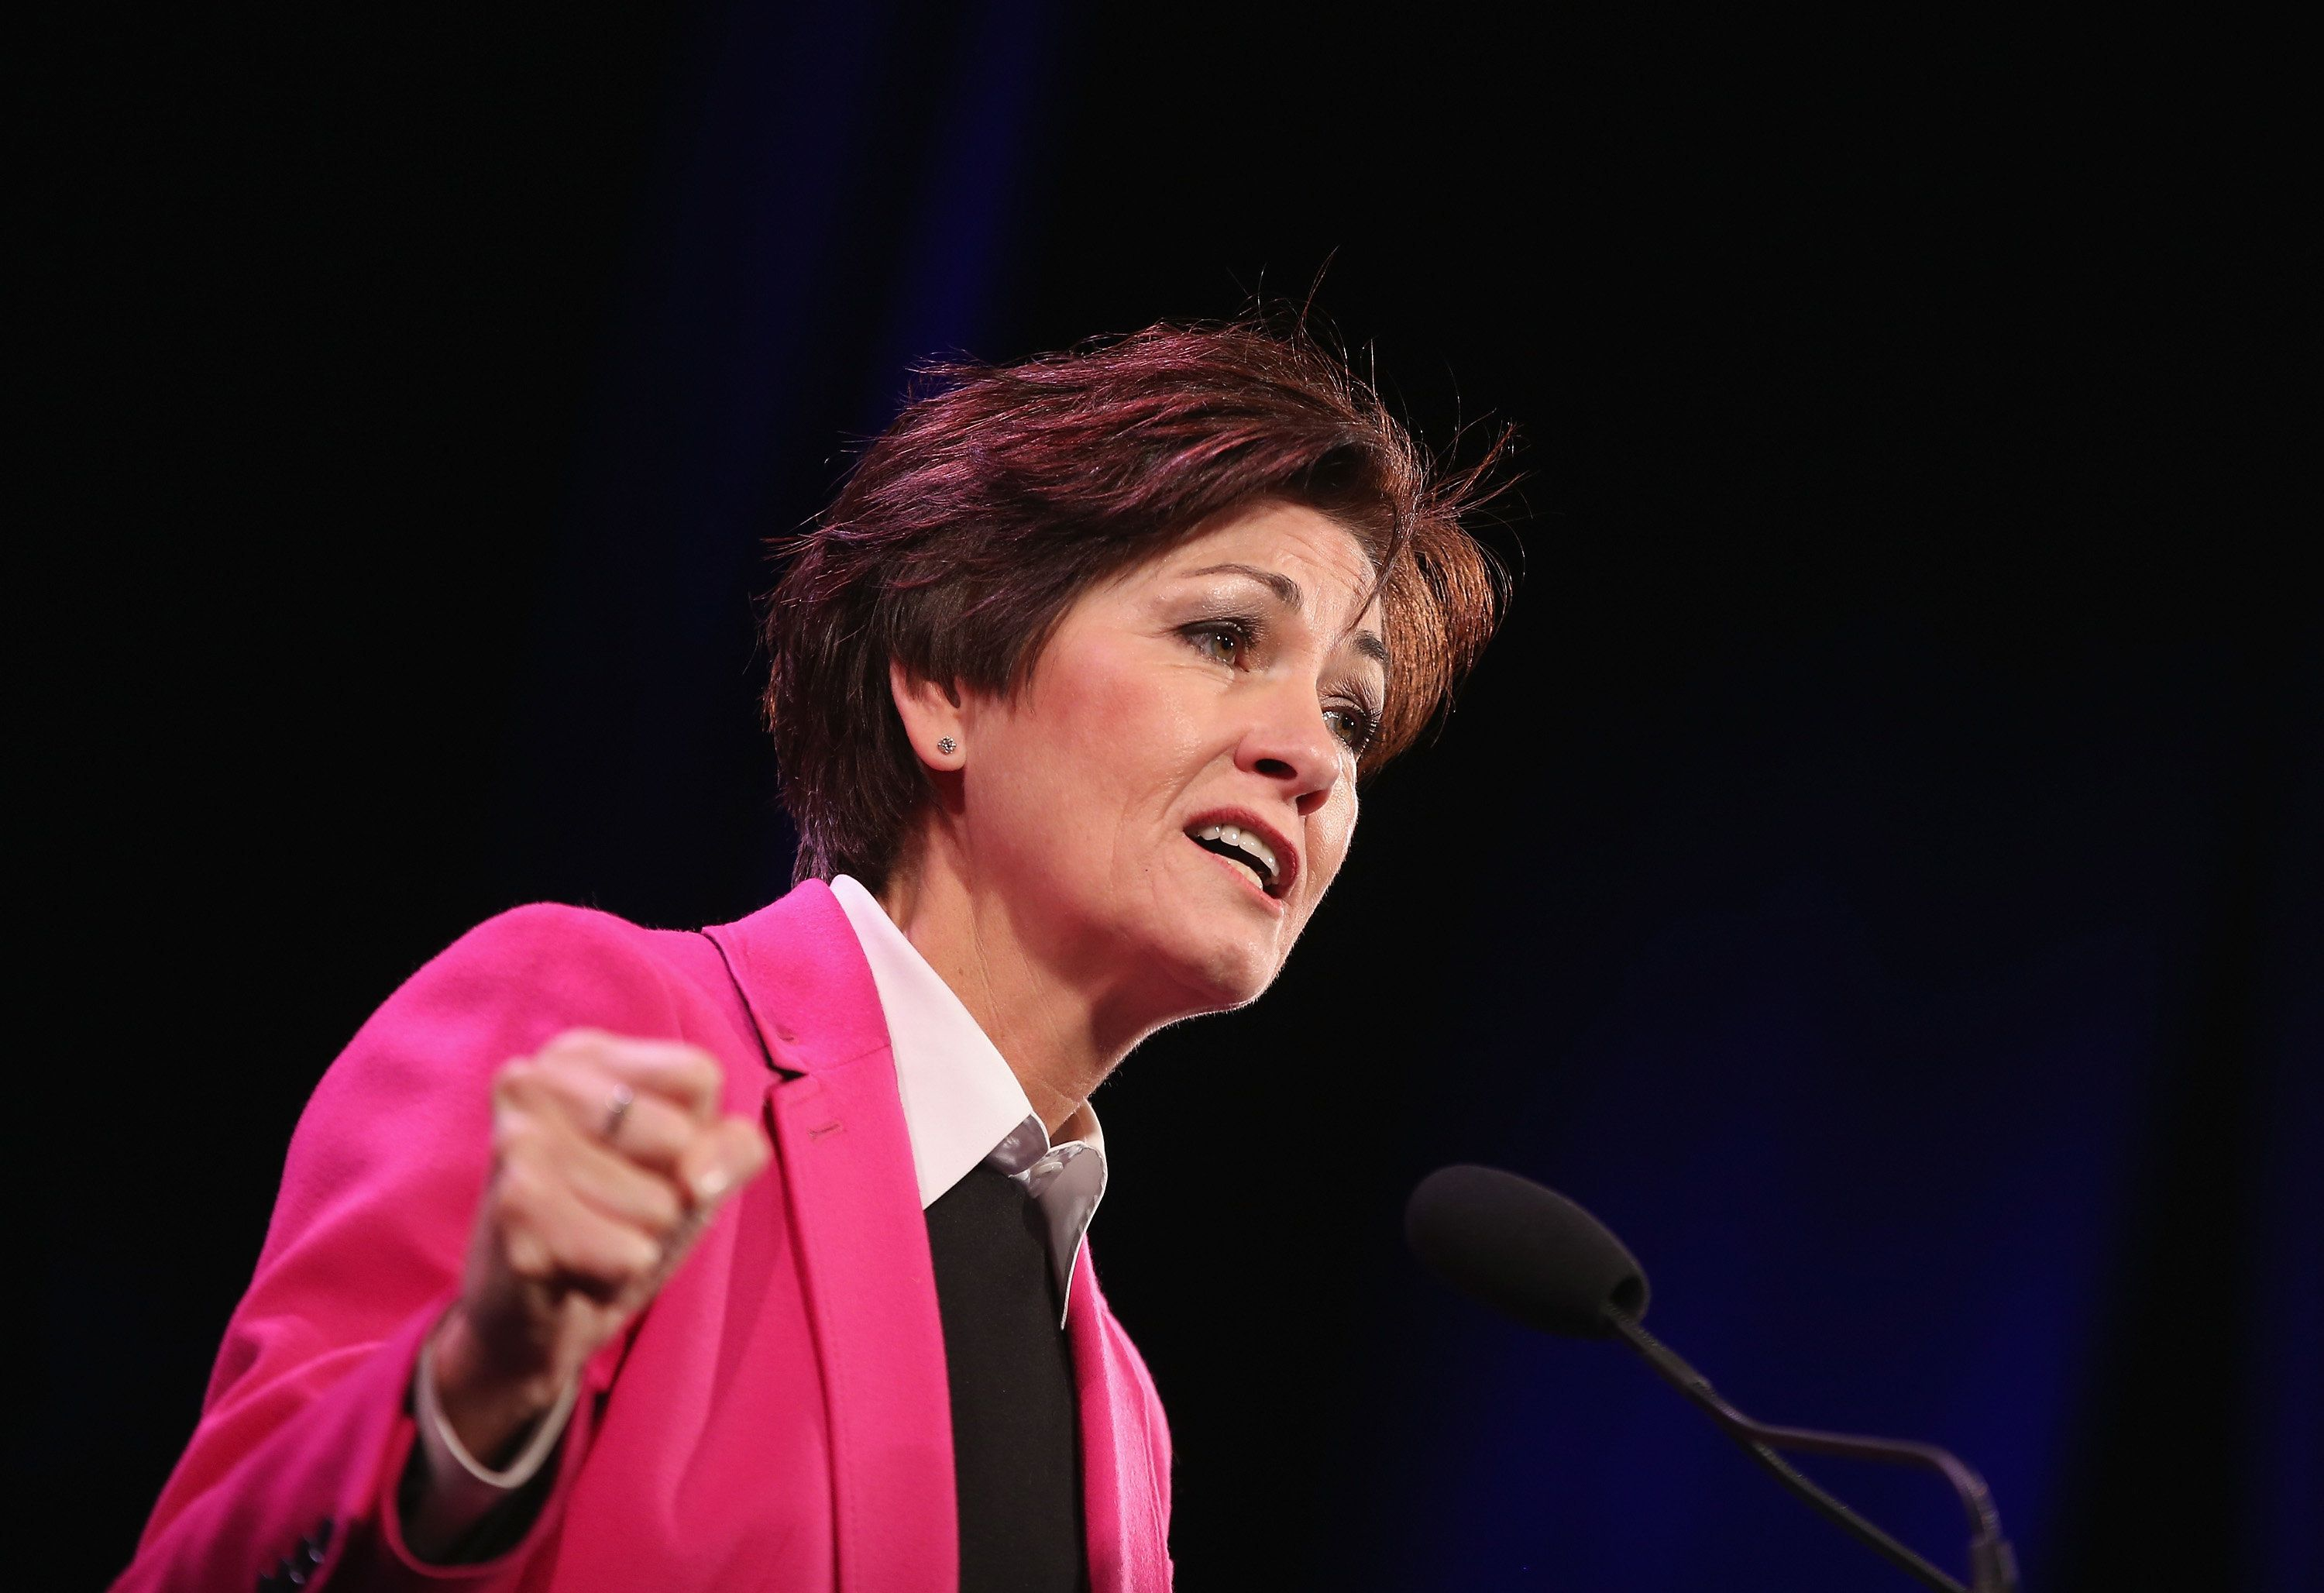 DES MOINES, IA - JANUARY 24:  Iowa Lt. Gov. Kim Reynolds speaks to guests  at the Iowa Freedom Summit on January 24, 2015 in Des Moines, Iowa. The summit is hosting a group of potential 2016 Republican presidential candidates to discuss core conservative principles ahead of the January 2016 Iowa Caucuses.  (Photo by Scott Olson/Getty Images)